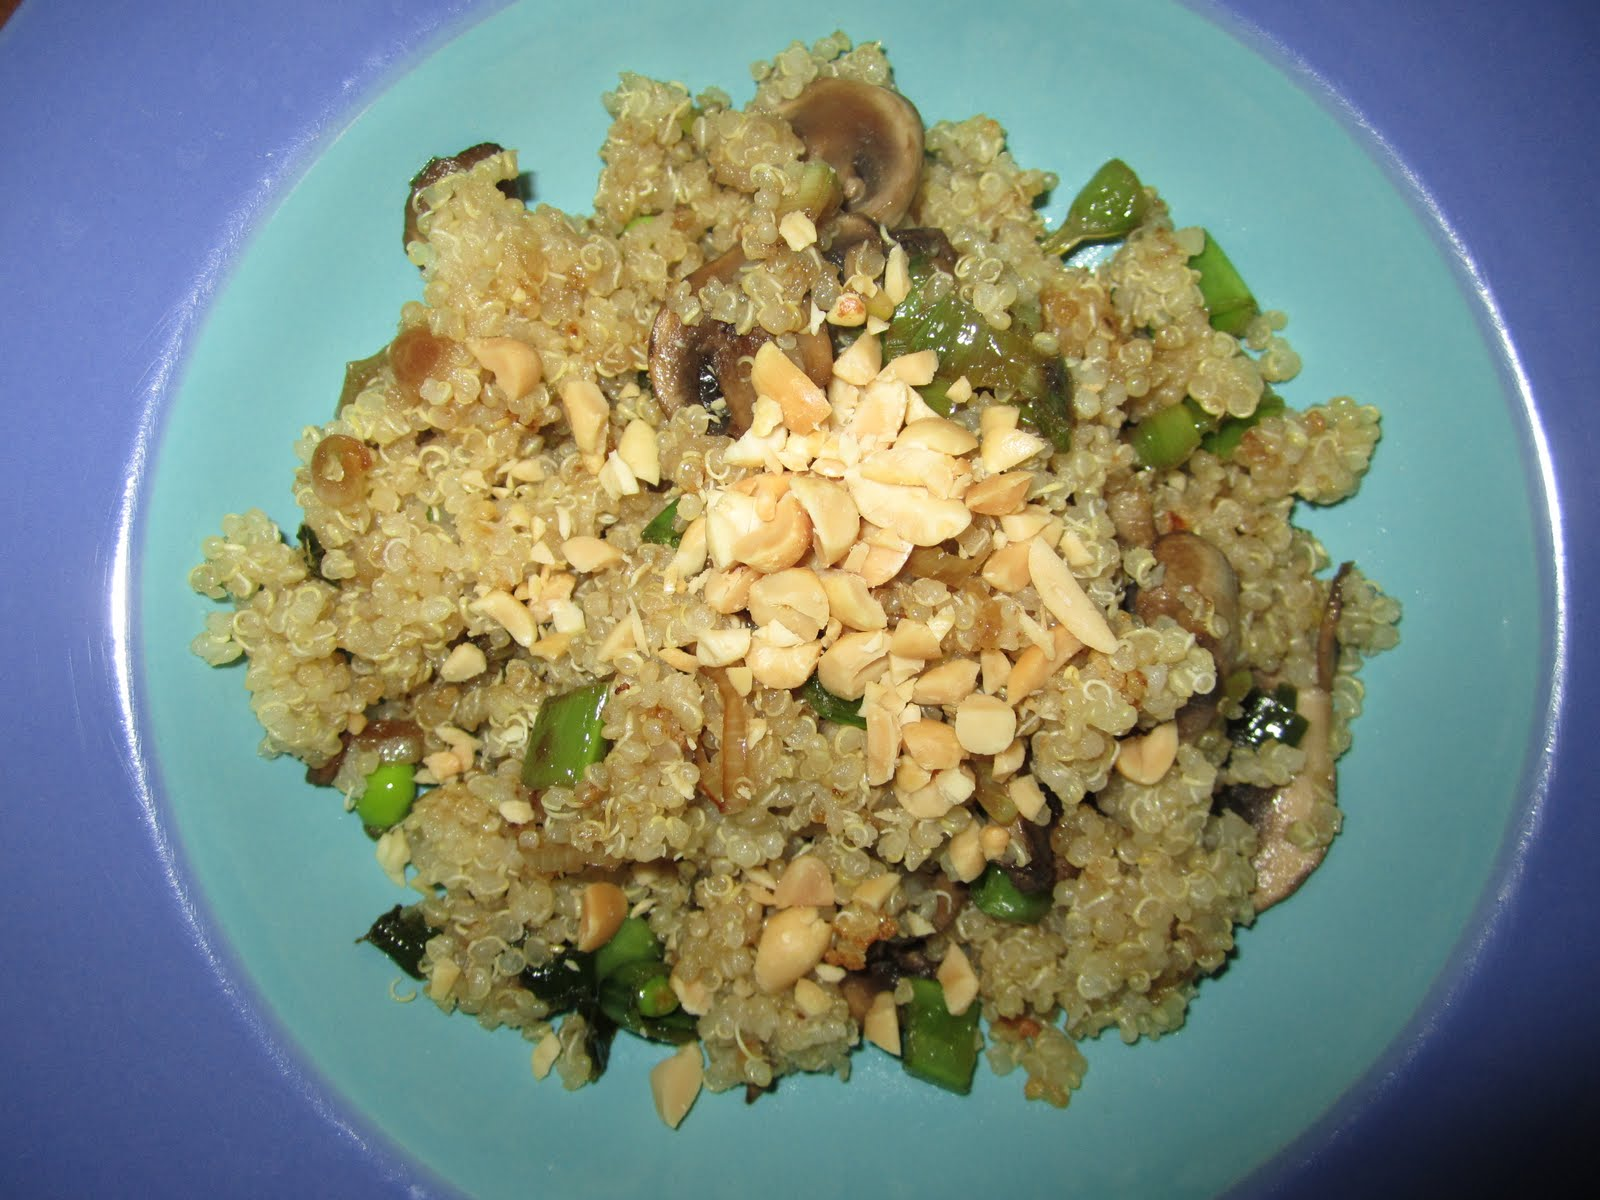 Boushell and a Peck: Quinoa with mushrooms and snap pea pods